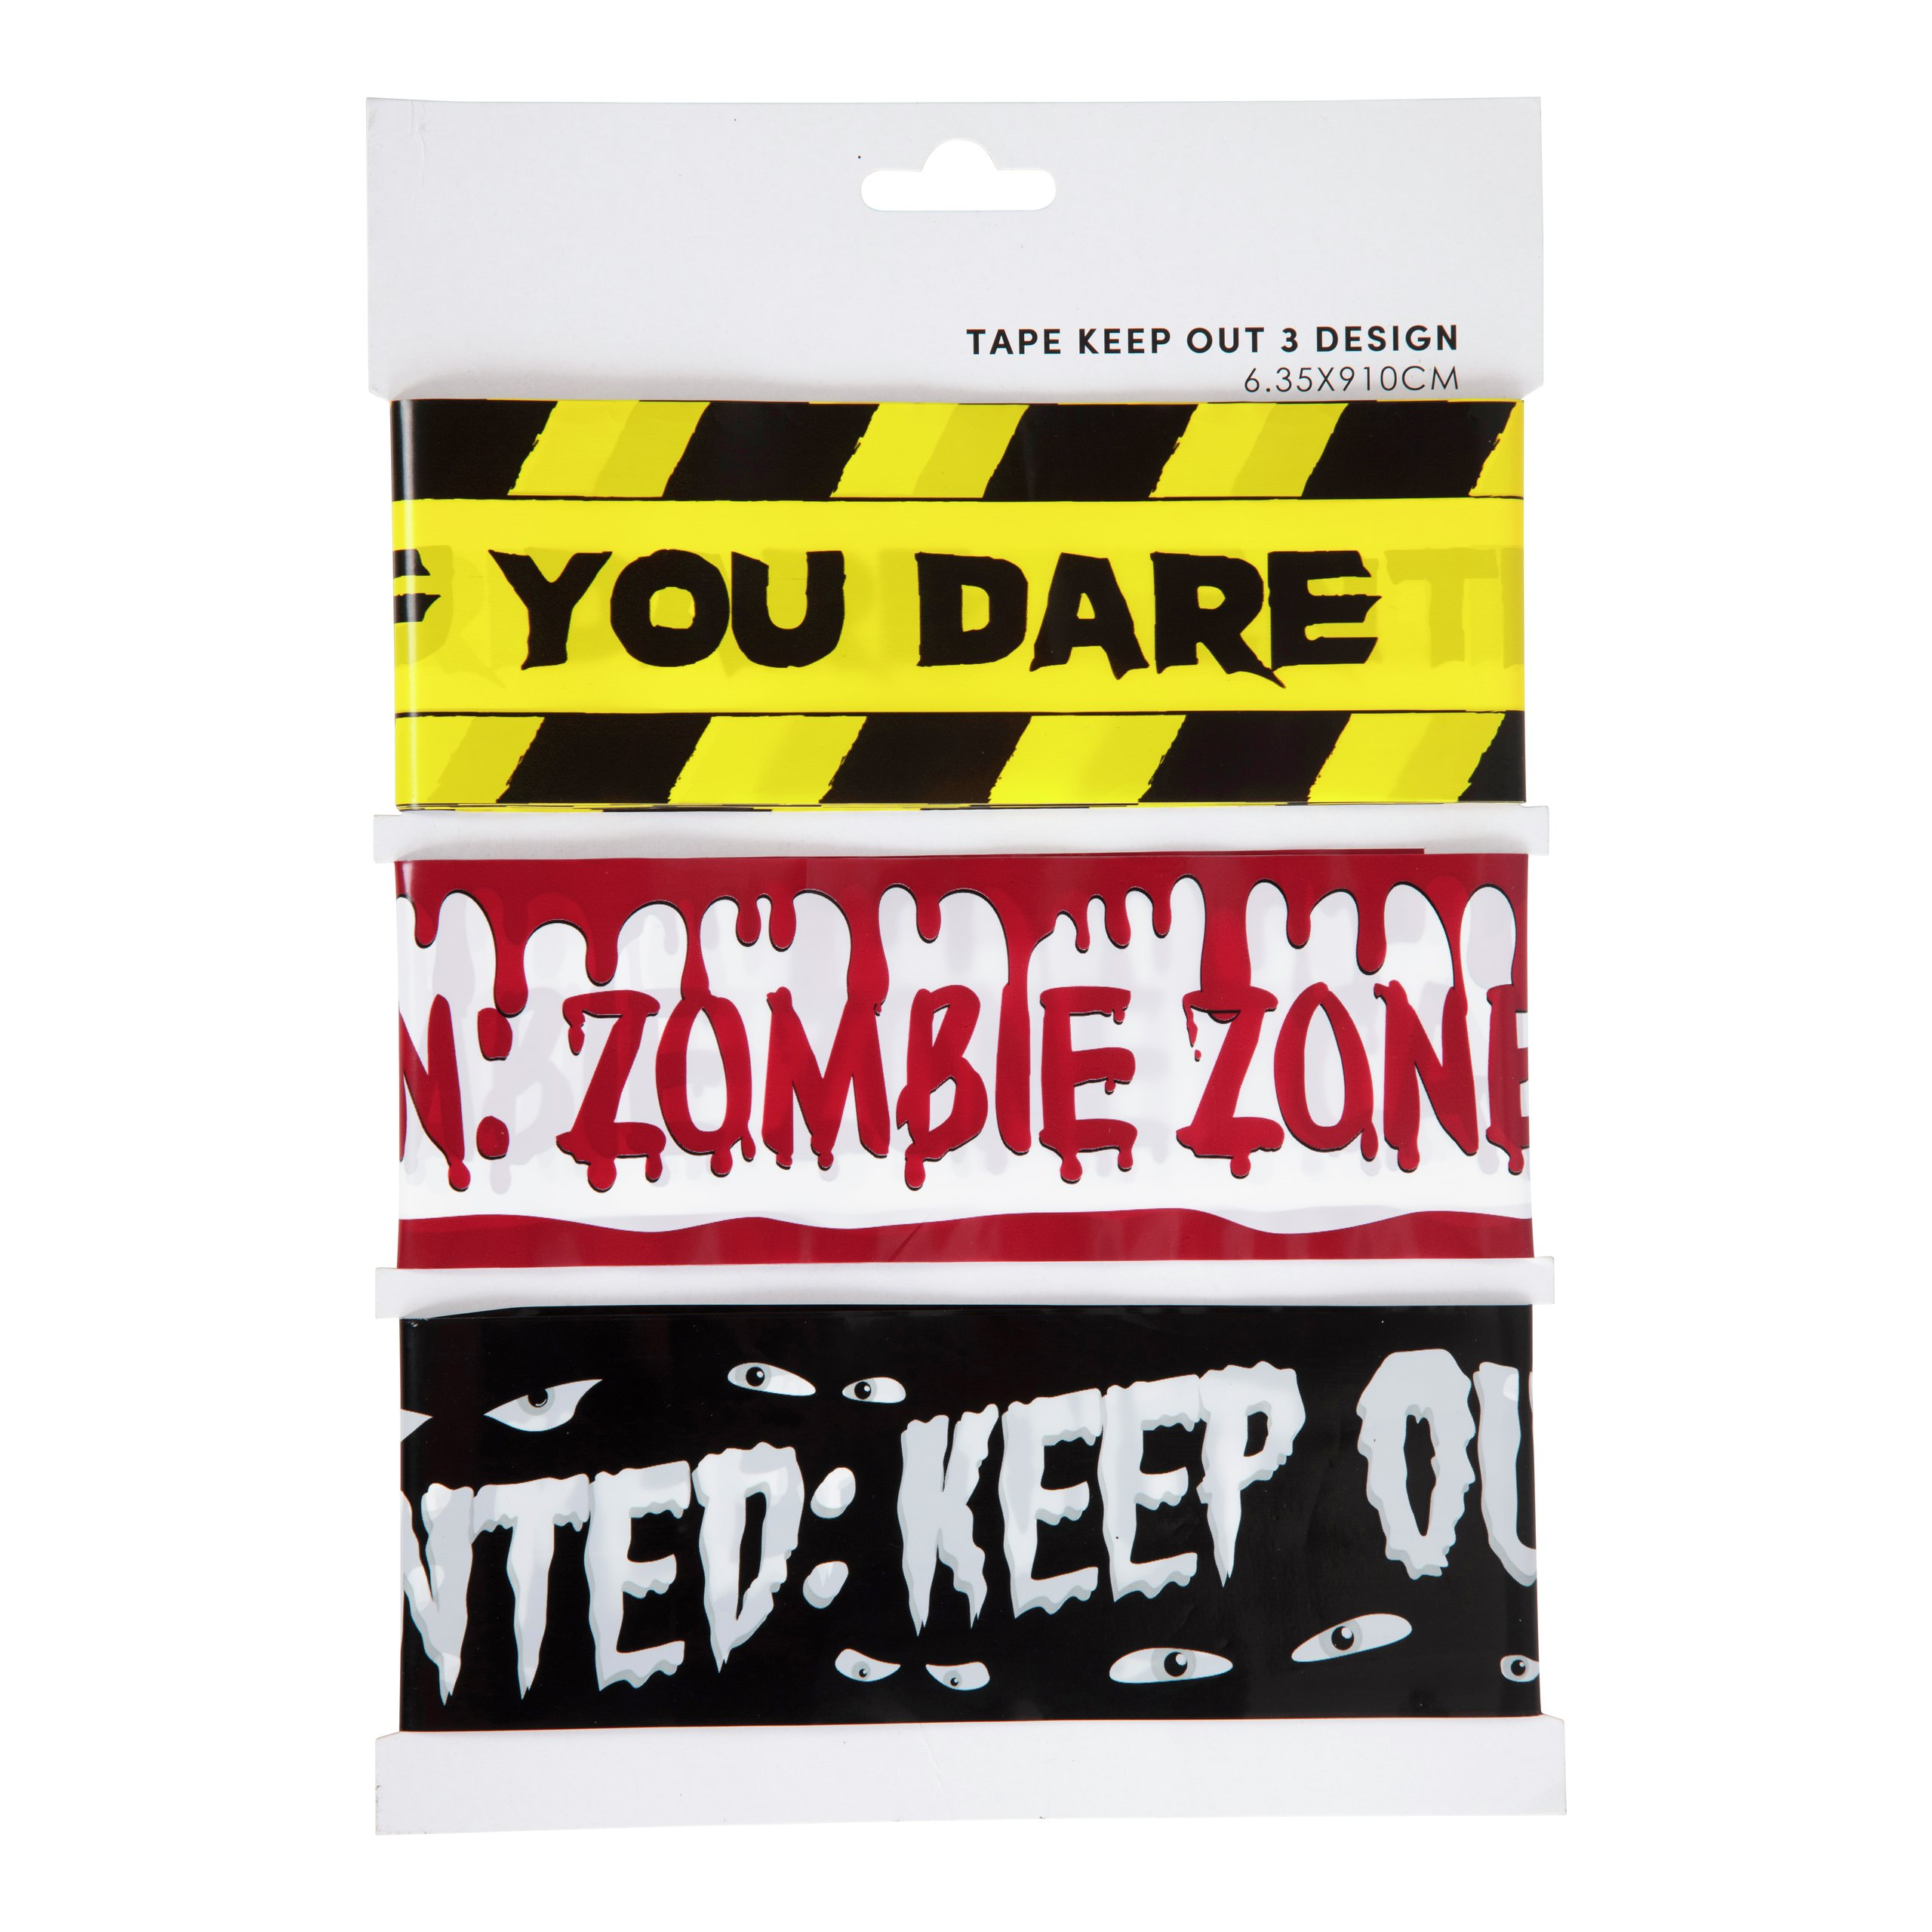 HALLOWEEN TAPE KEEP OUT 3 DESIGN-102543